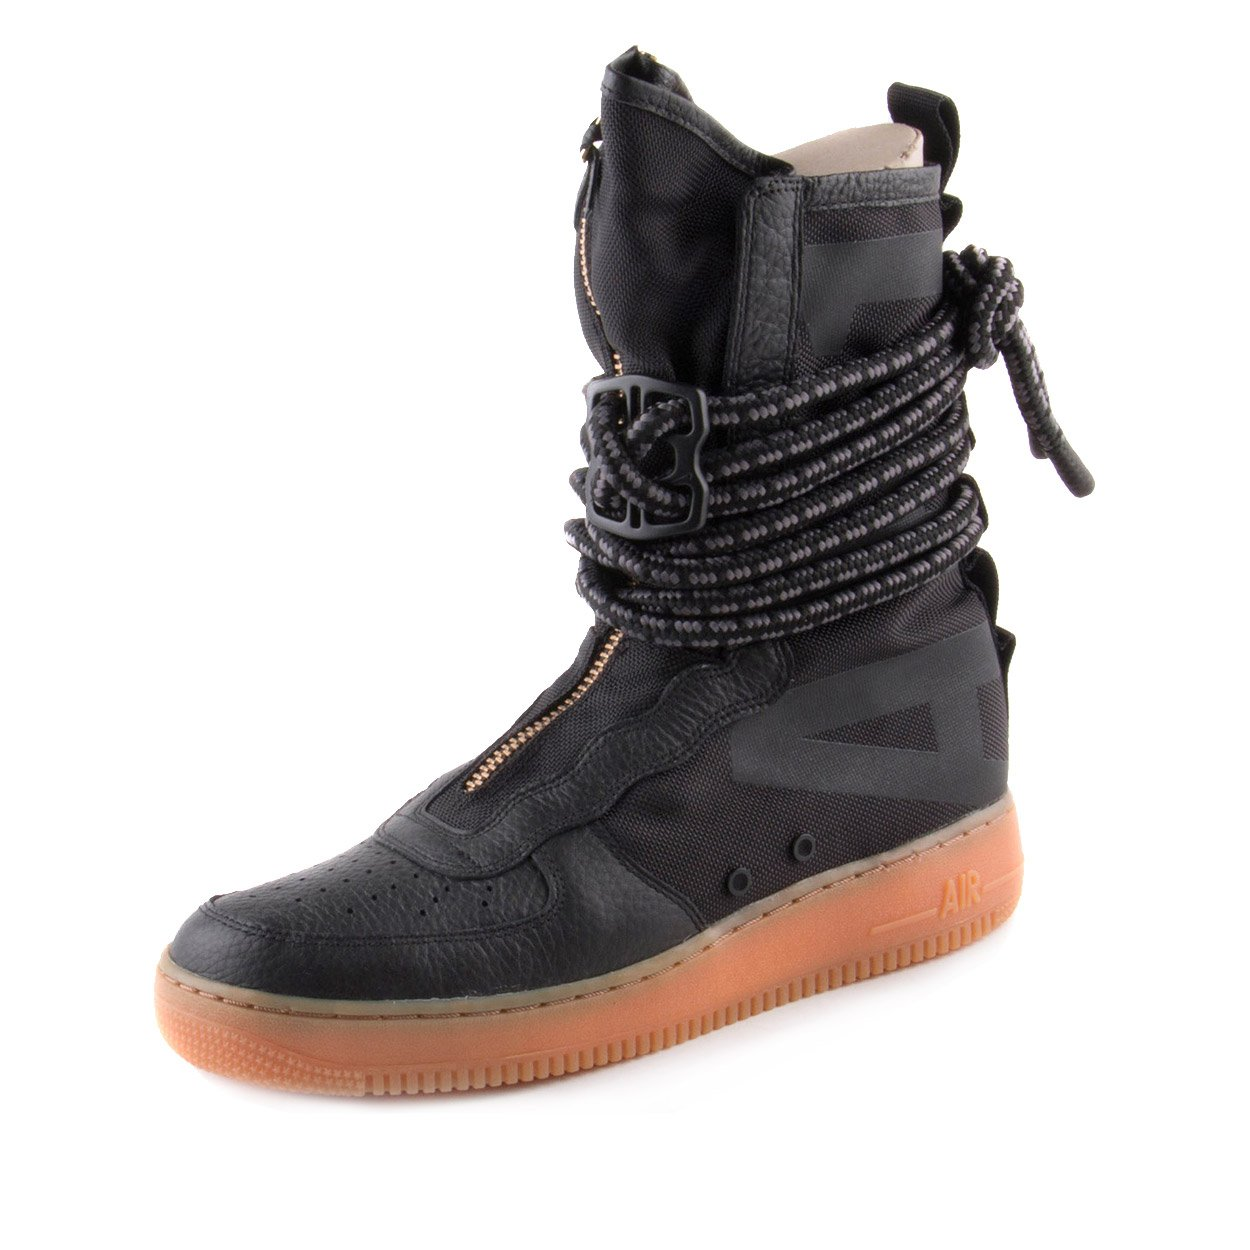 NIKE Mens SF Air Force 1 High Premium Boots Black/Gum Med Brown AA1128-001 Size 10.5